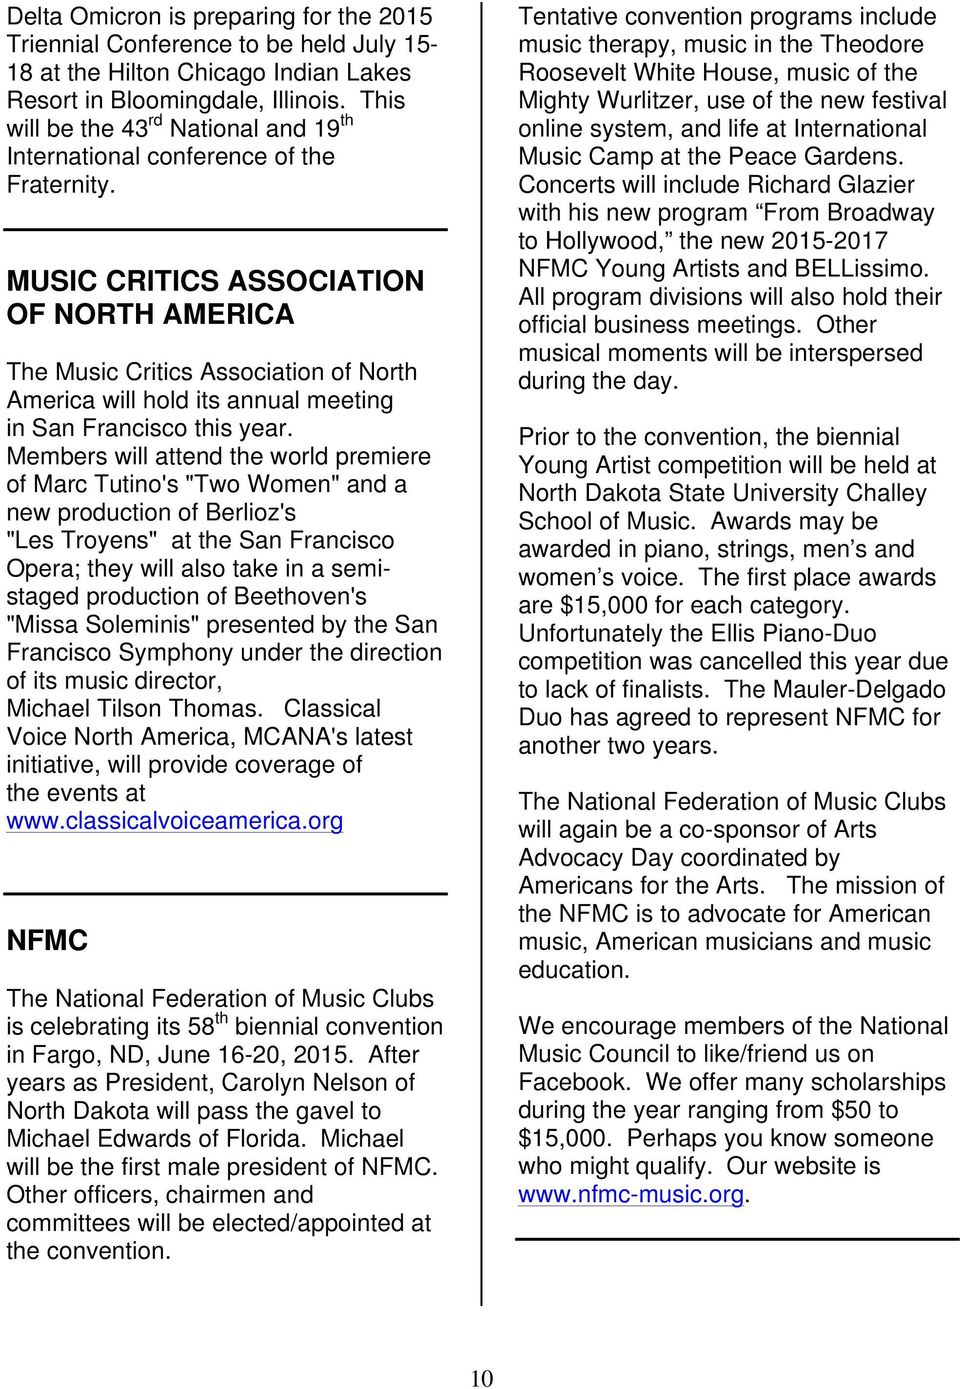 MUSIC CRITICS ASSOCIATION OF NORTH AMERICA The Music Critics Association of North America will hold its annual meeting in San Francisco this year.